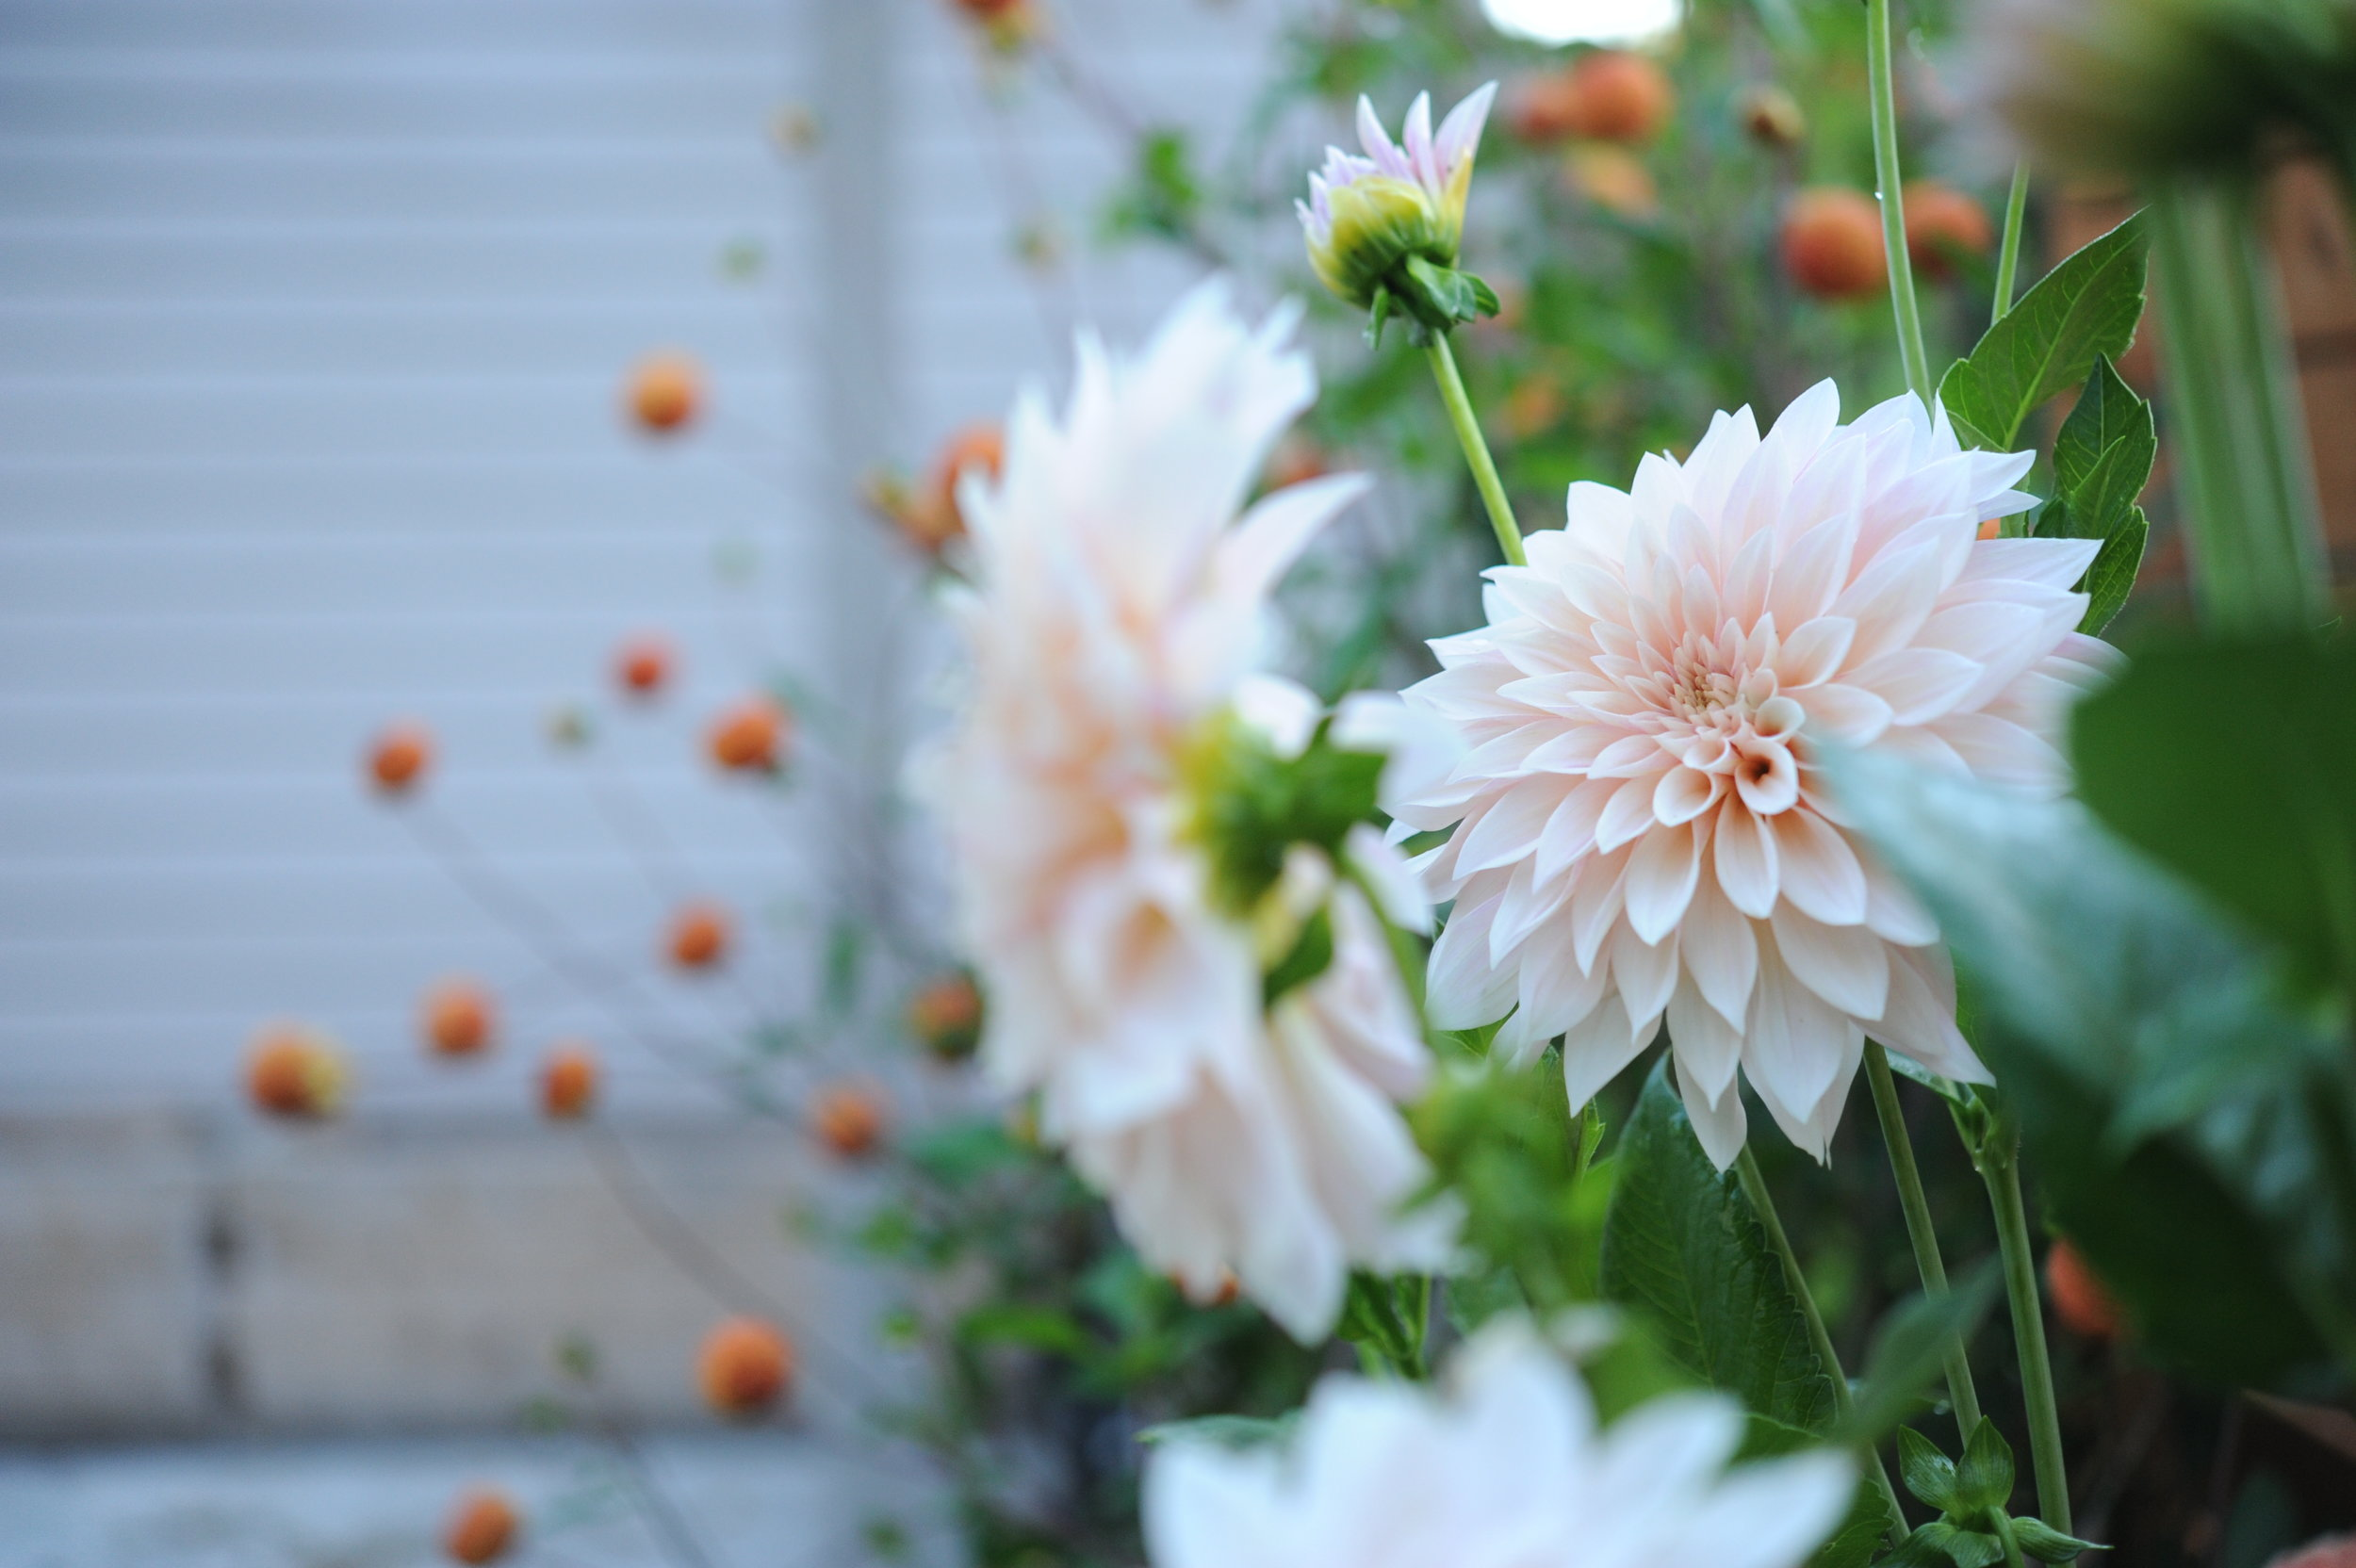 Dahlias_Hilary Dahl_Seattle Urban Farm Co.jpg